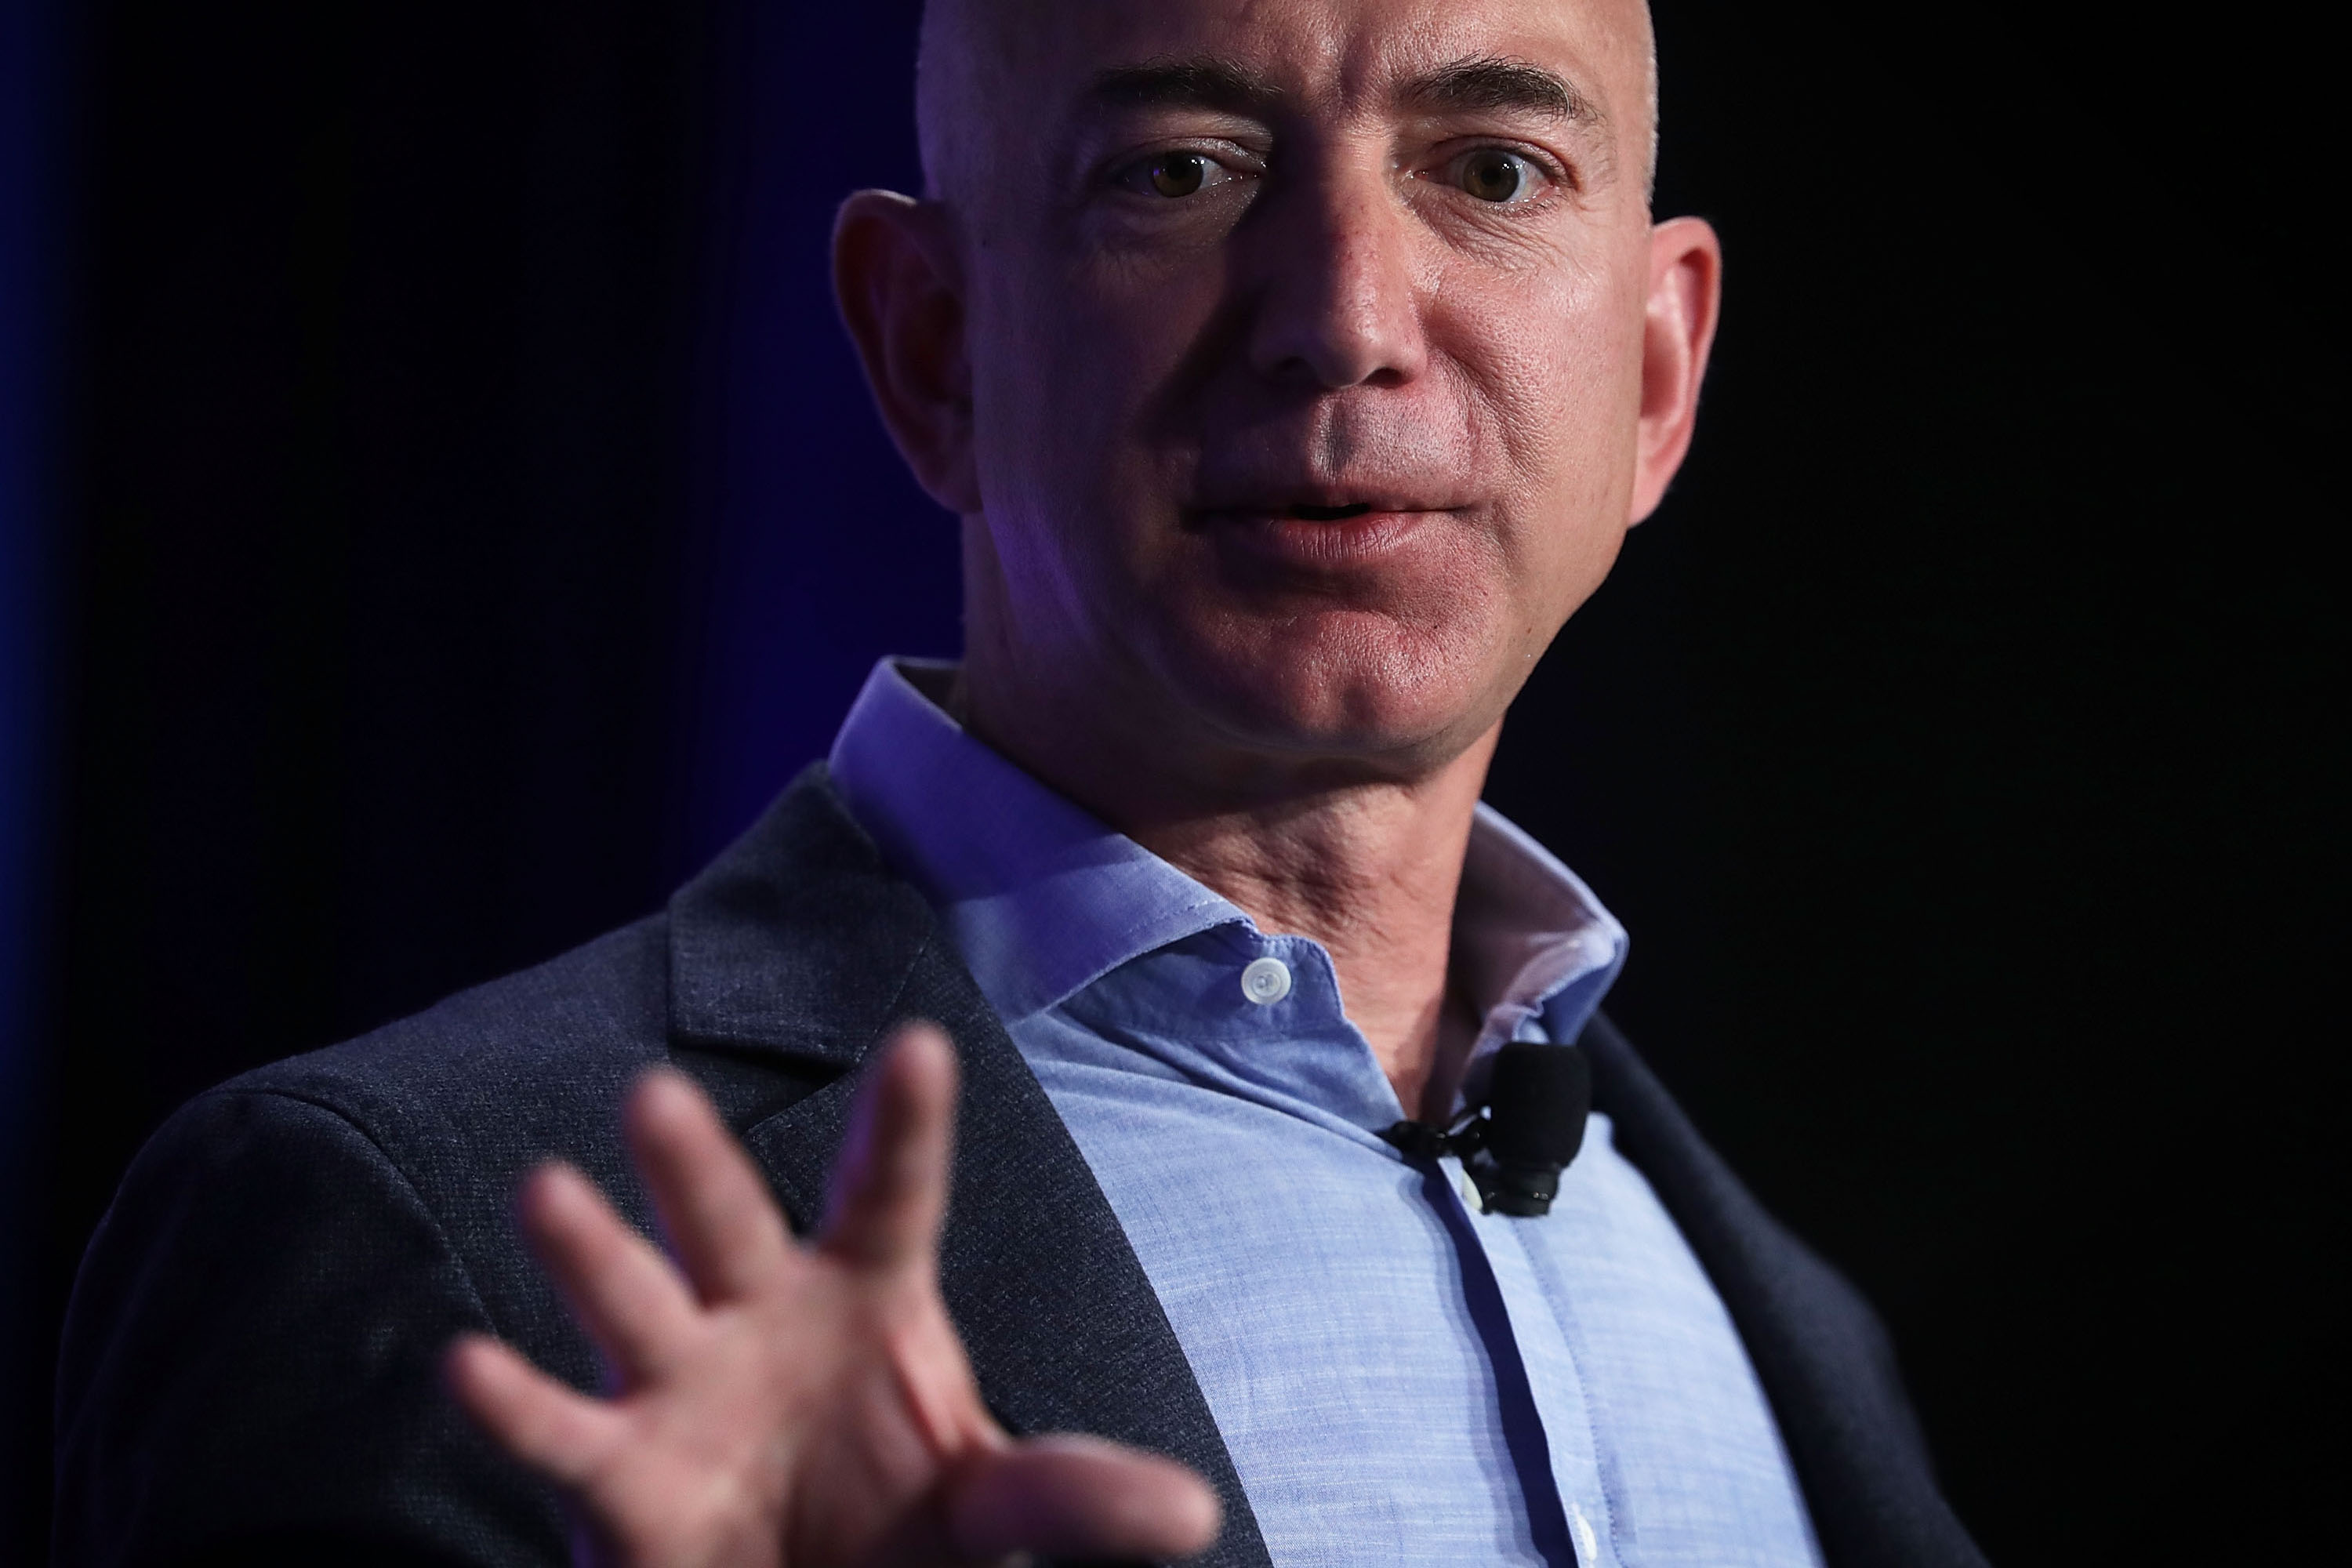 Jeff Bezos, founder and CEO of Amazon. (Getty Images)